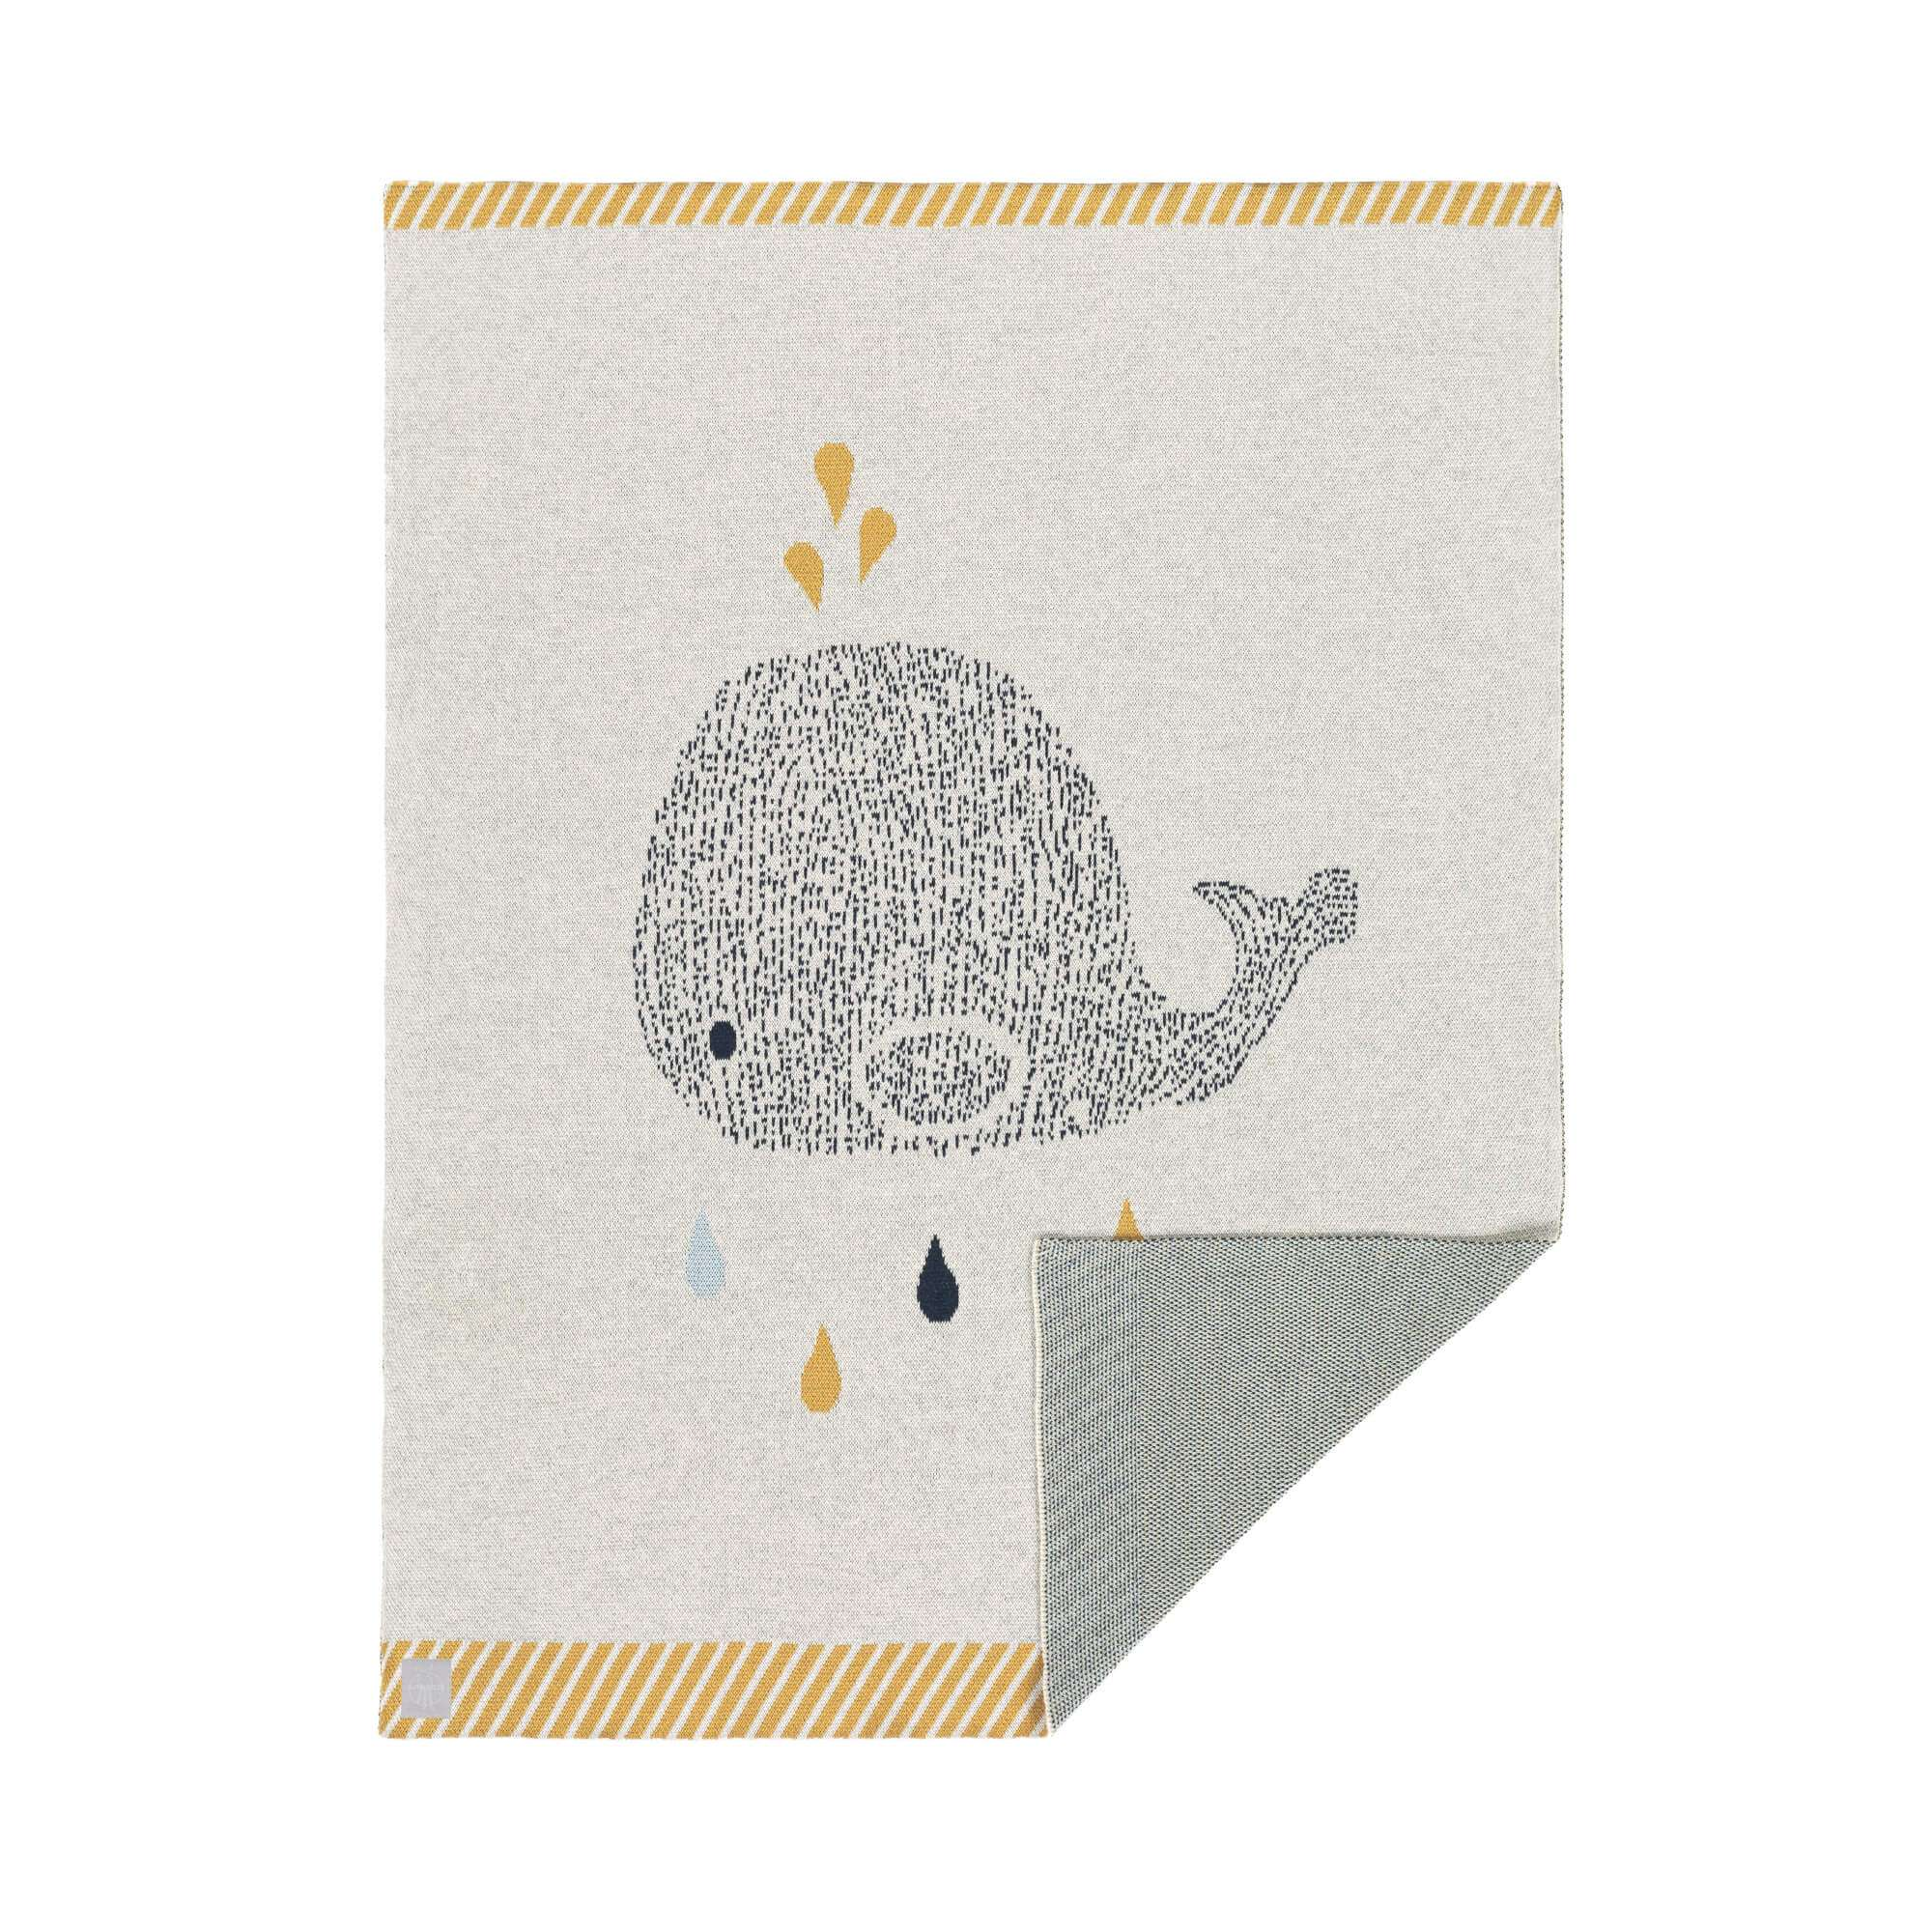 4e808095a81 Lassig knitted baby blanket gots little water whale lassig usa jpg  2000x2000 Baby moon cap 1009